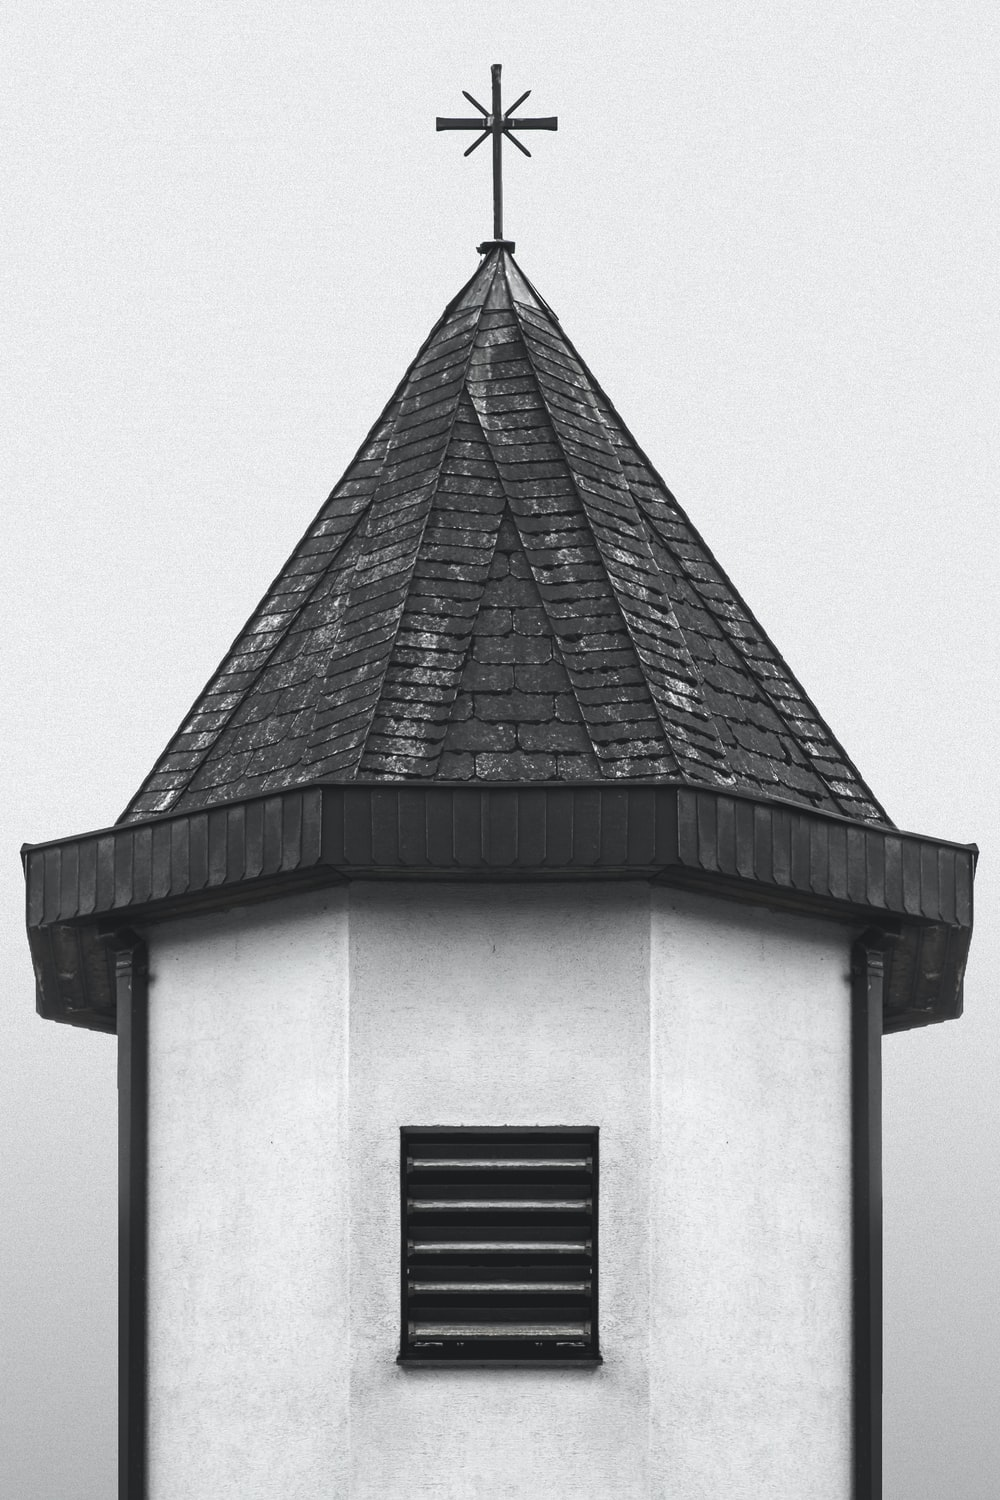 white and black cathedral close up photo